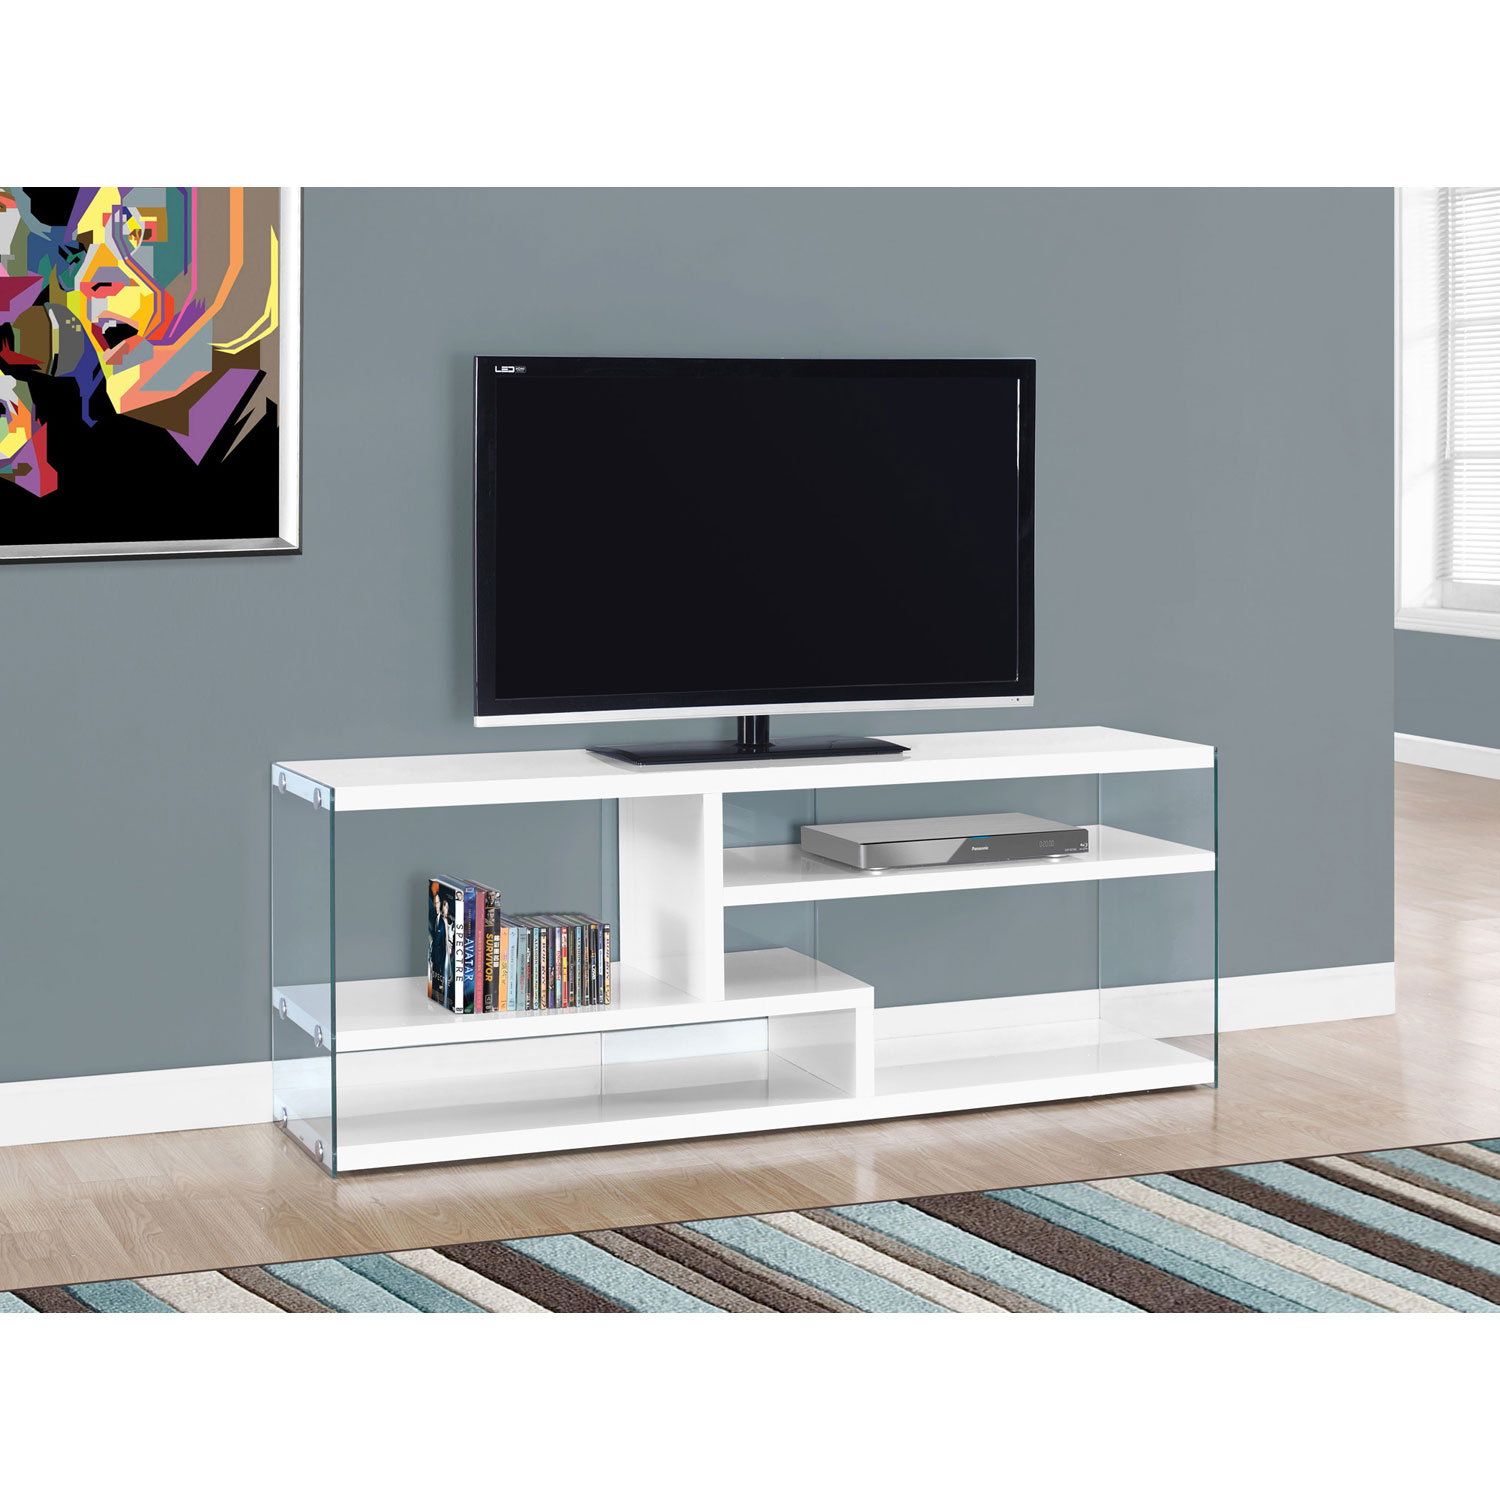 Hawthorne Ave Tv Stand 60l / Glossy White With Tempered Glass I 2690 Within Noah 75 Inch Tv Stands (View 9 of 30)